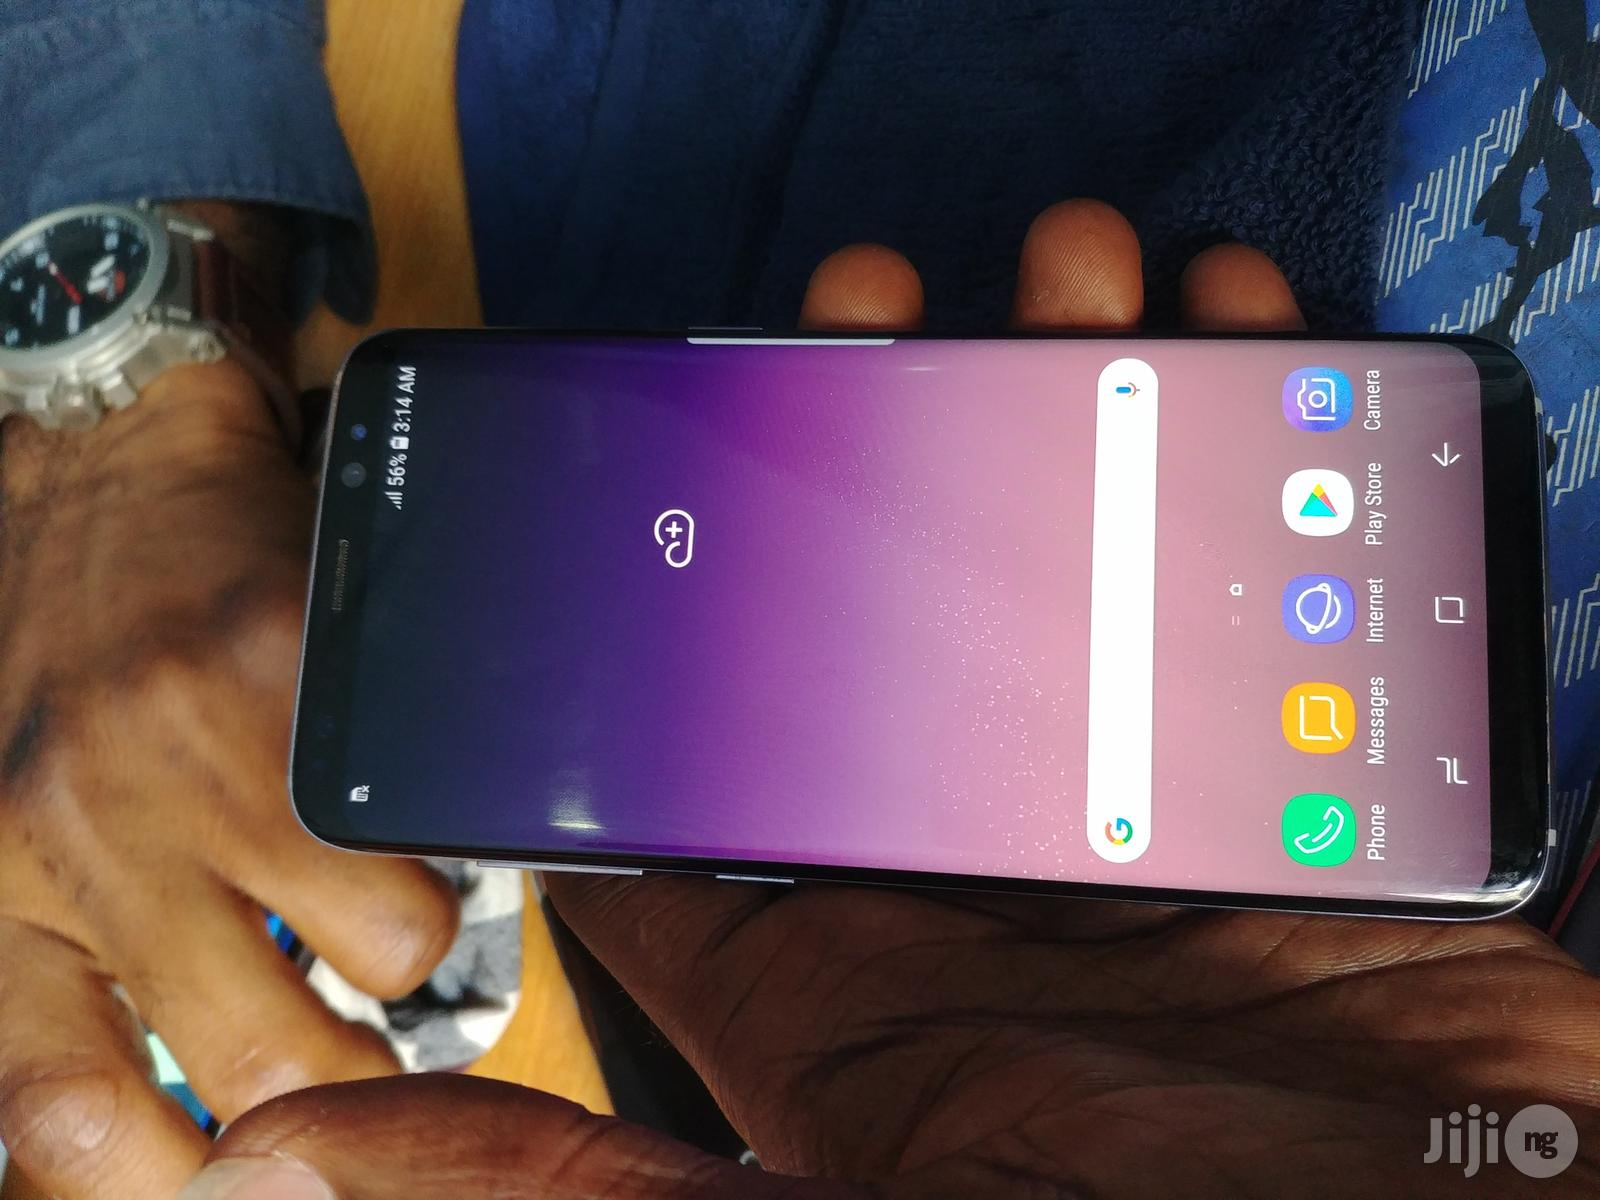 Samsung Galaxy S8 64 GB Blue   Mobile Phones for sale in Ikeja, Lagos State, Nigeria